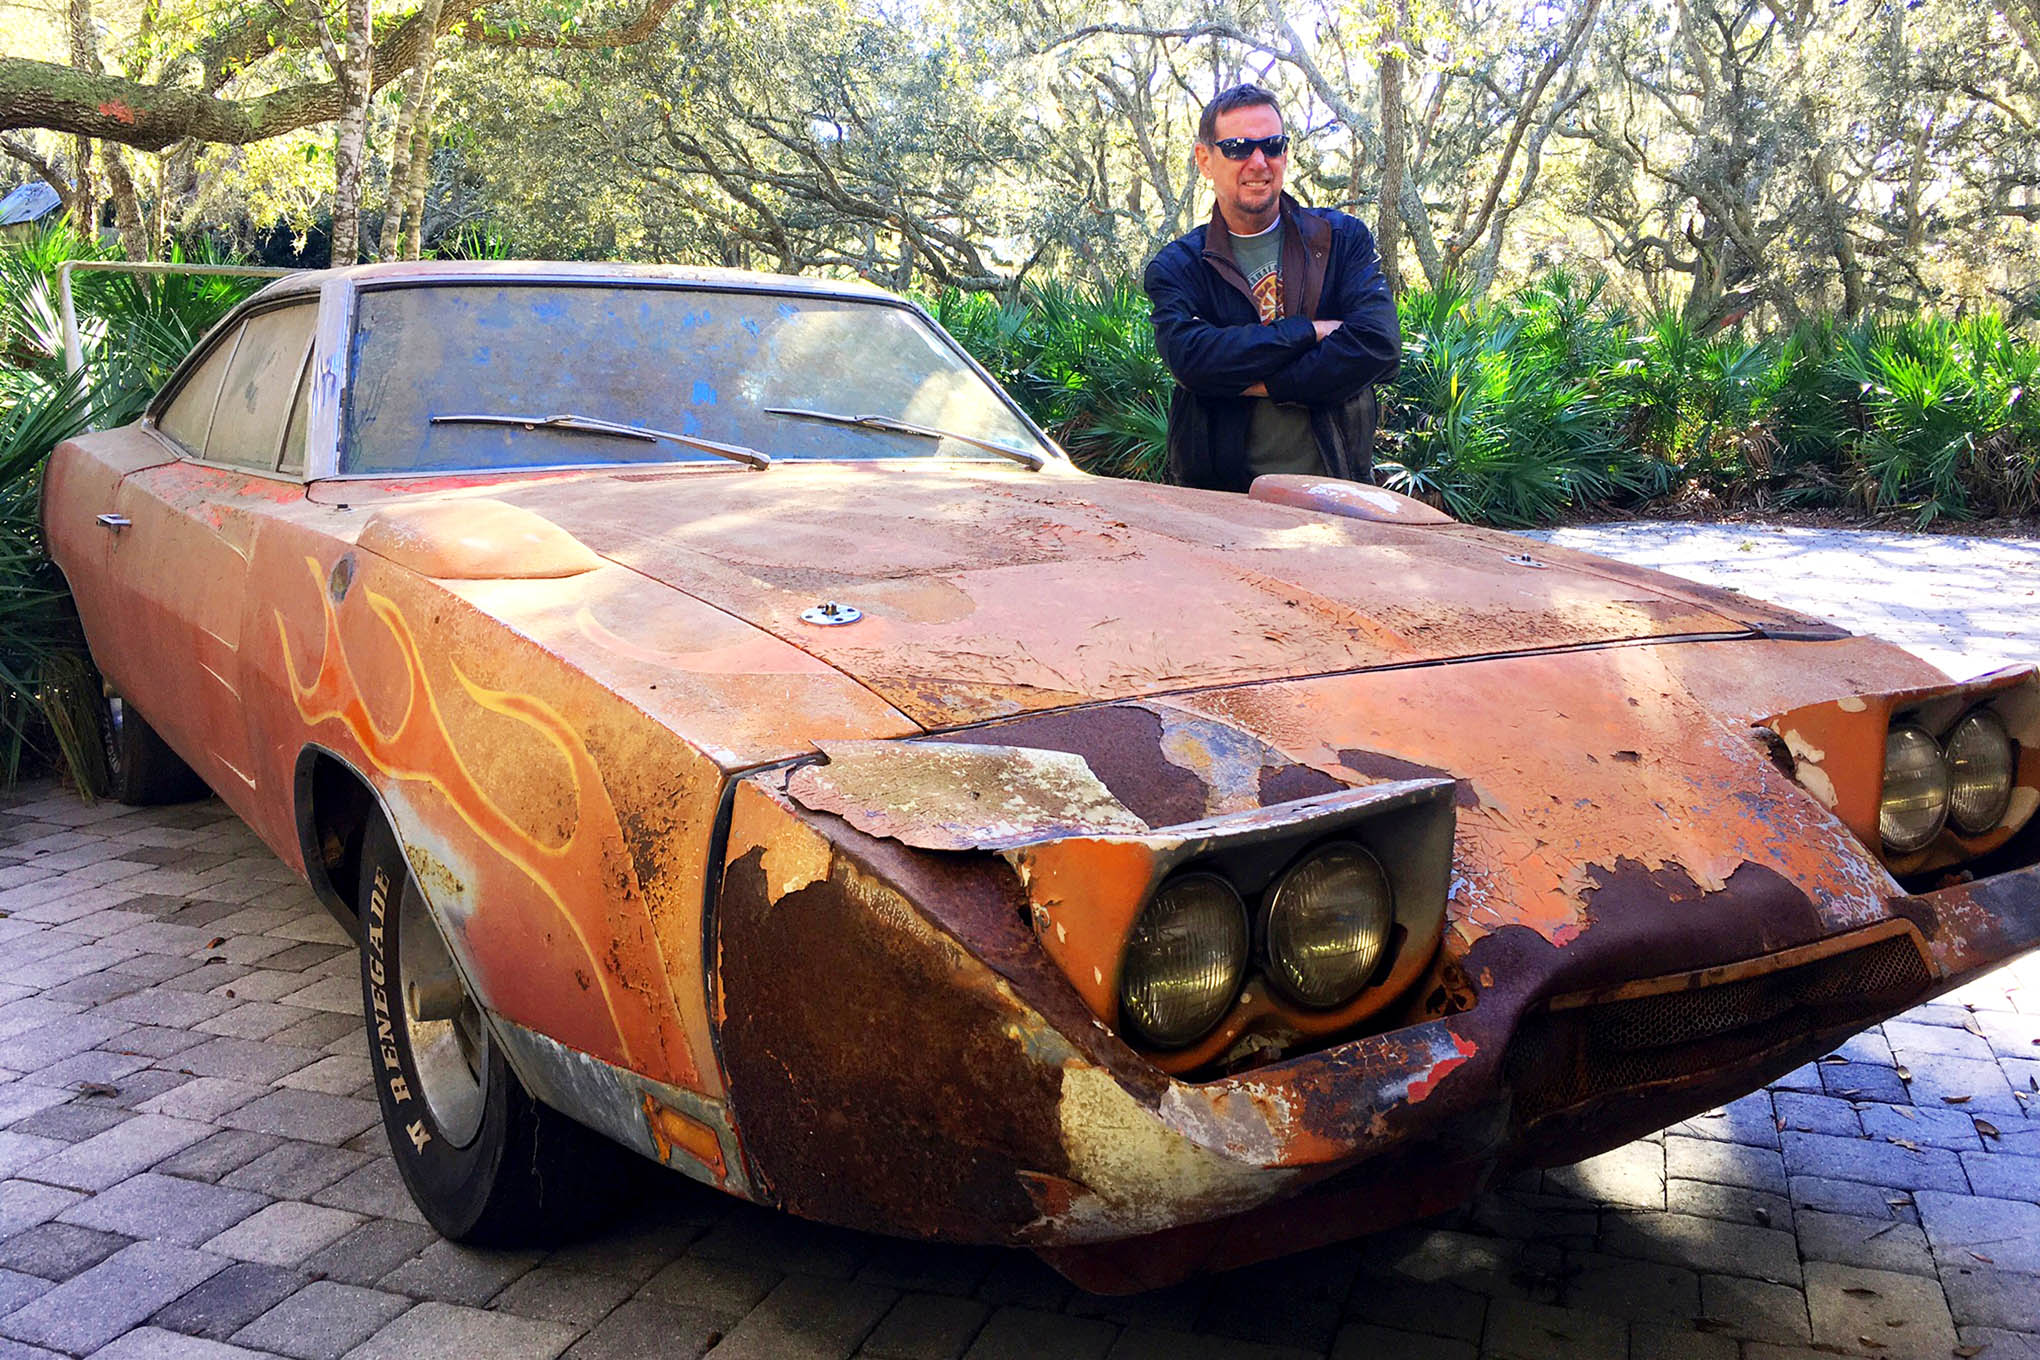 Dr. Jim Norman poses with his new 1969 Dodge Daytona Charger barn find that he snatched up at Mecum's Kissimmee auction last weekend. Norman's family is elbow-deep in Dodge history; his family was in the Dodge retail business in the '60s and '70s, in Florida, during the peak of the NASCAR aero wars. Who better to preserve this piece of history?